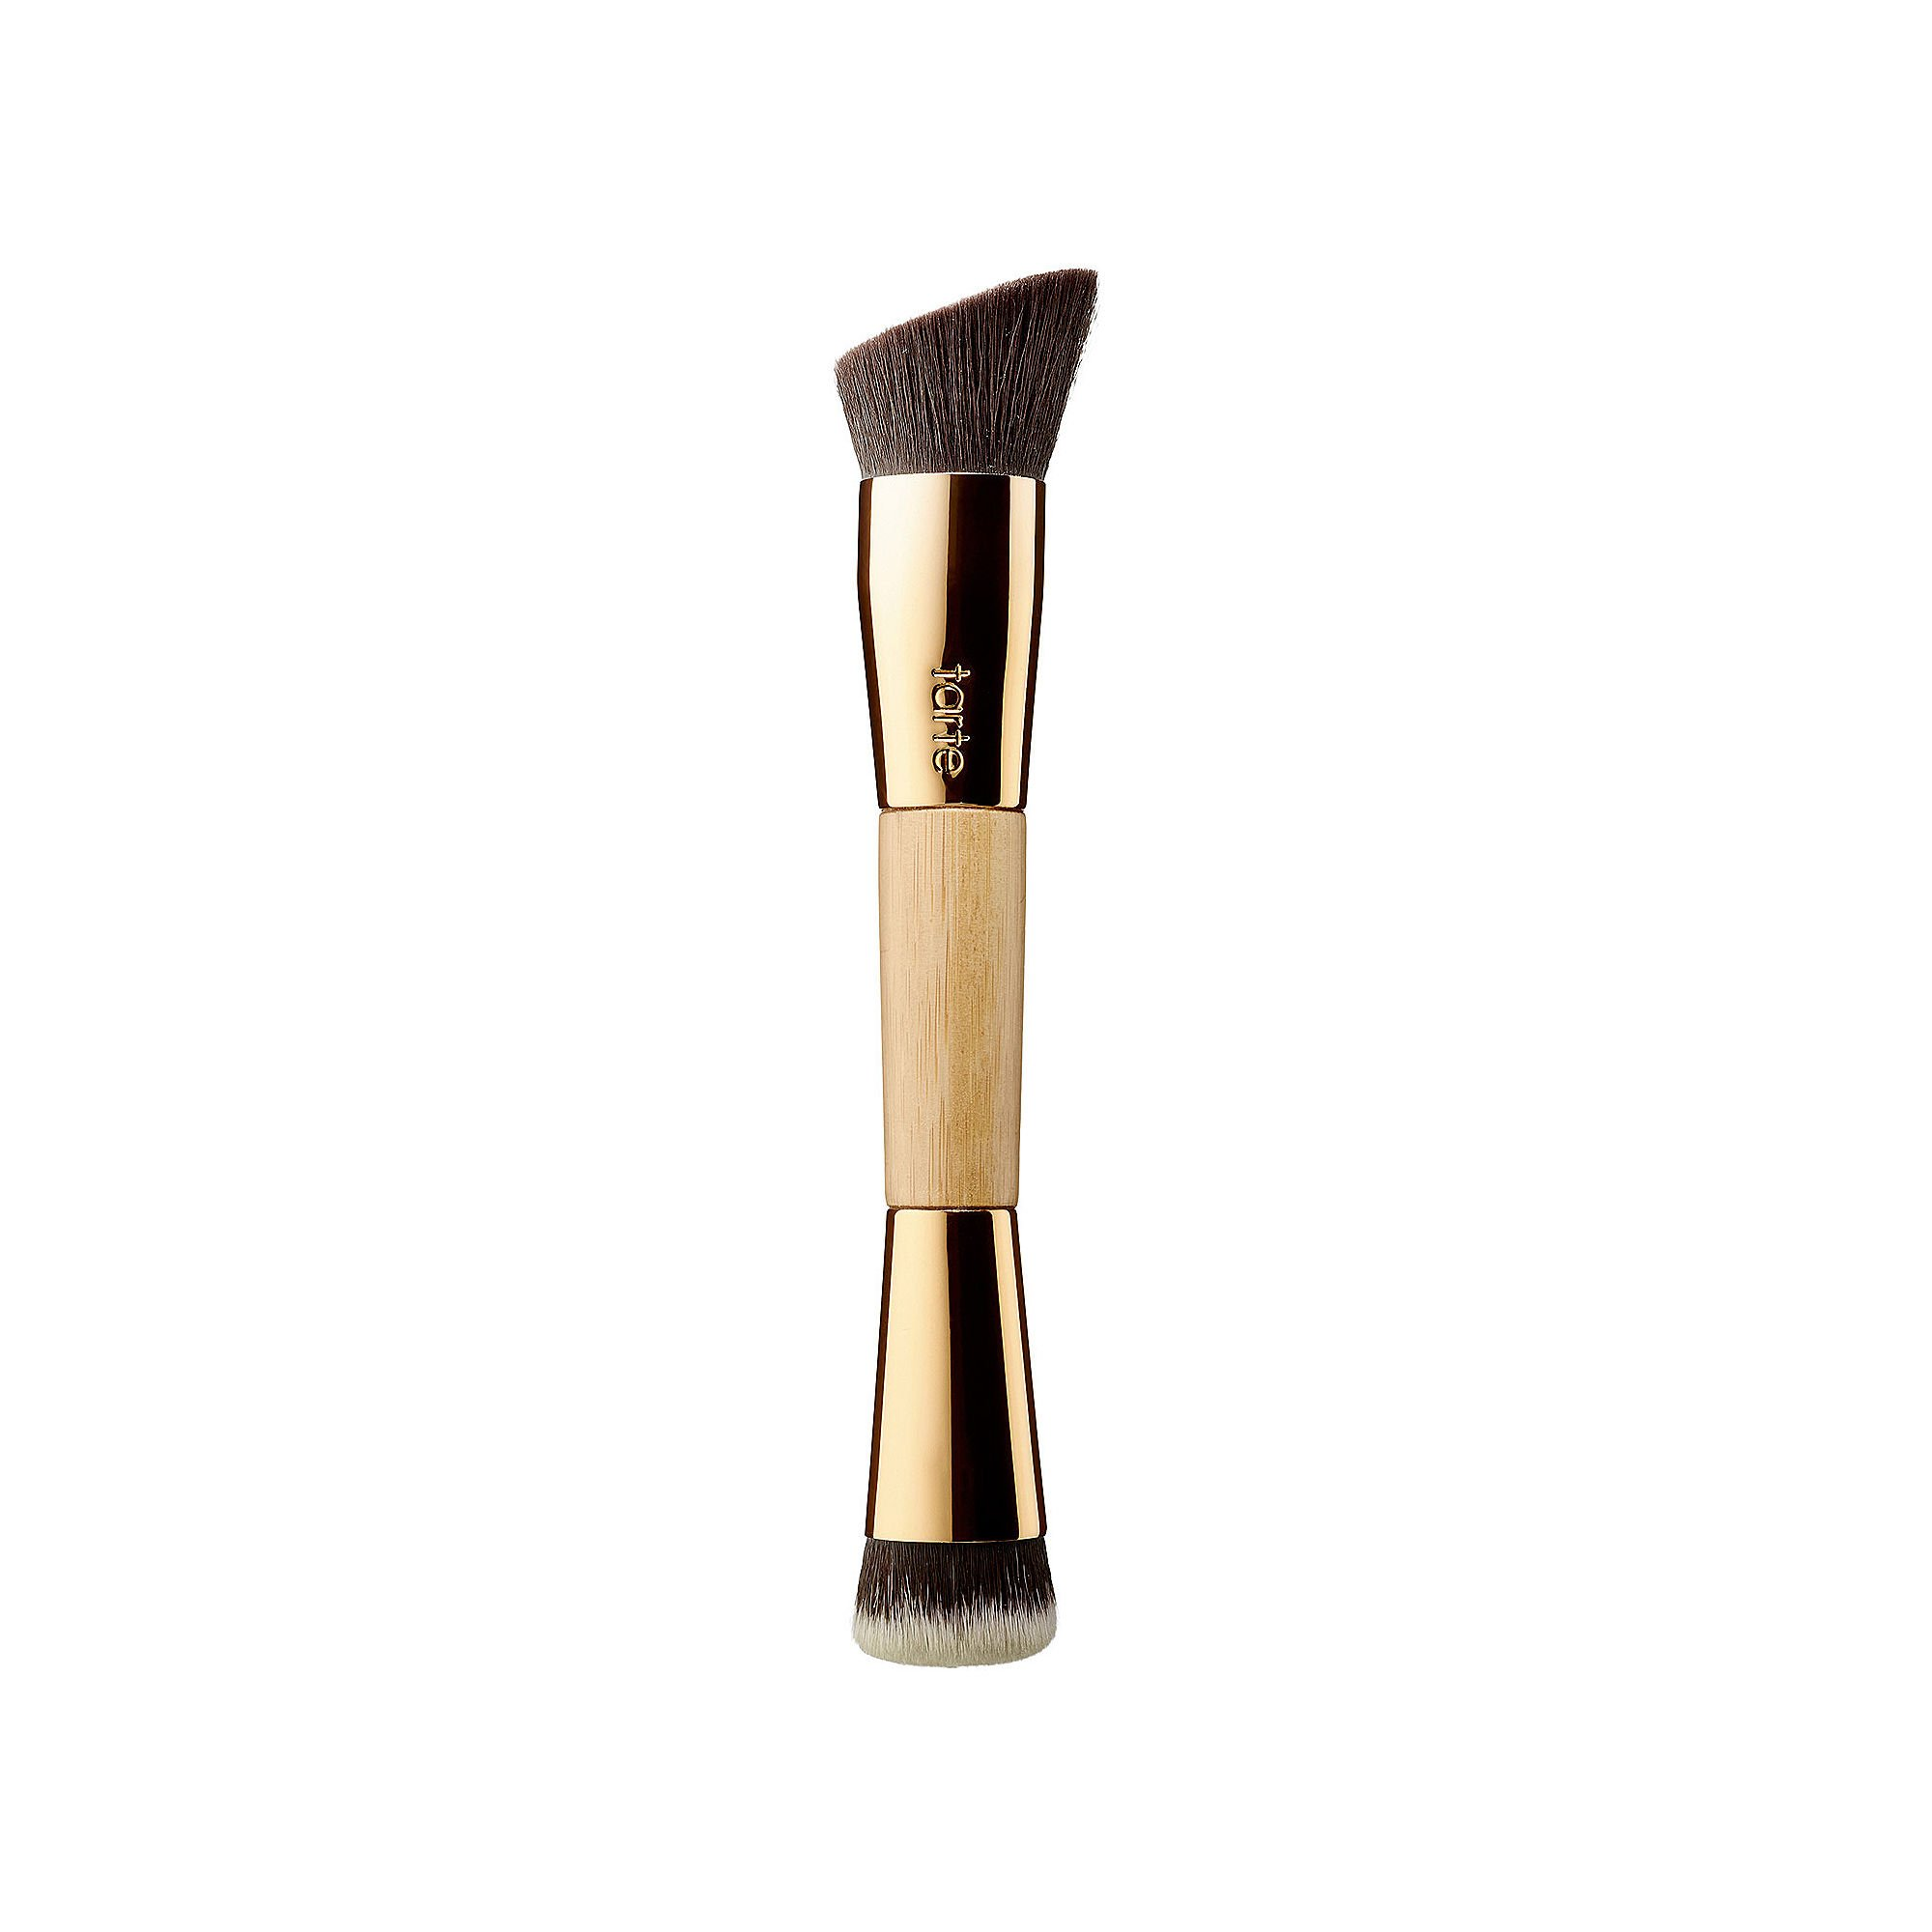 Tarte - The Slenderizer Bamboo Double-ended Contouring Brush - for Face